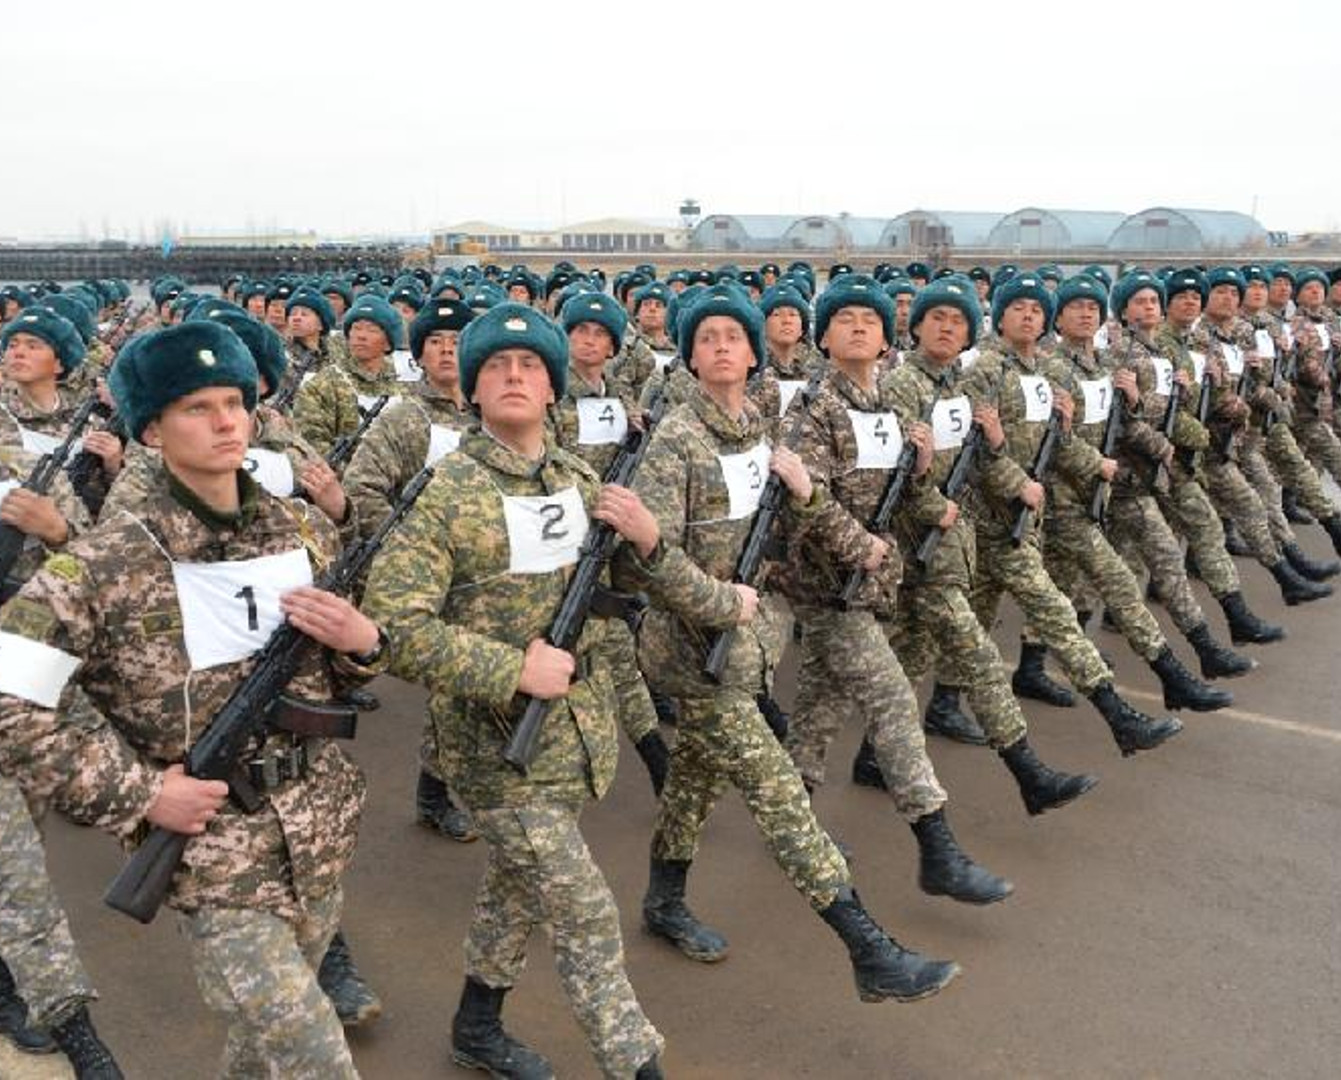 Astana prepares for military parade